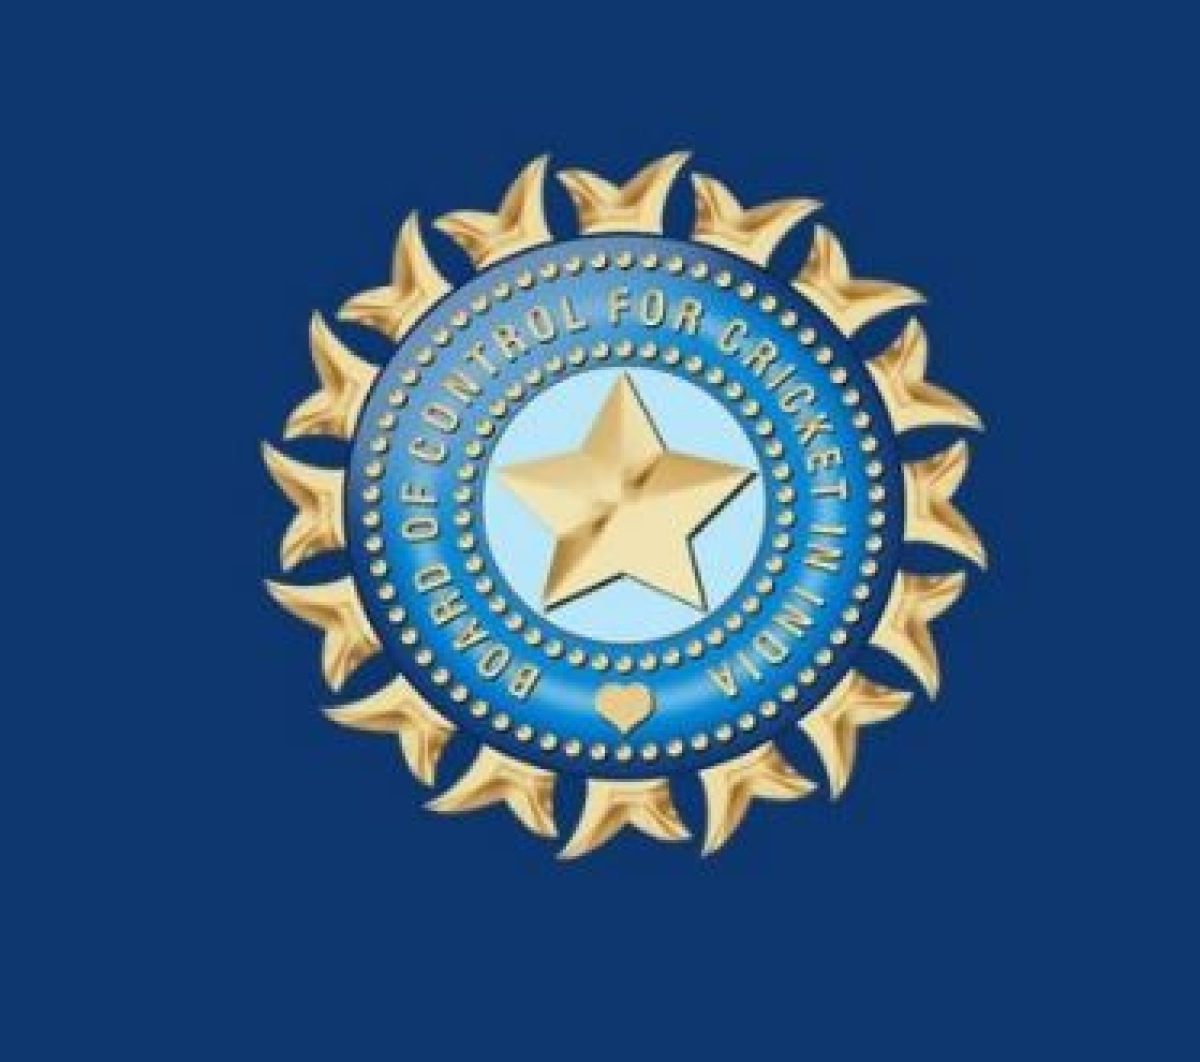 Series against England to be postponed